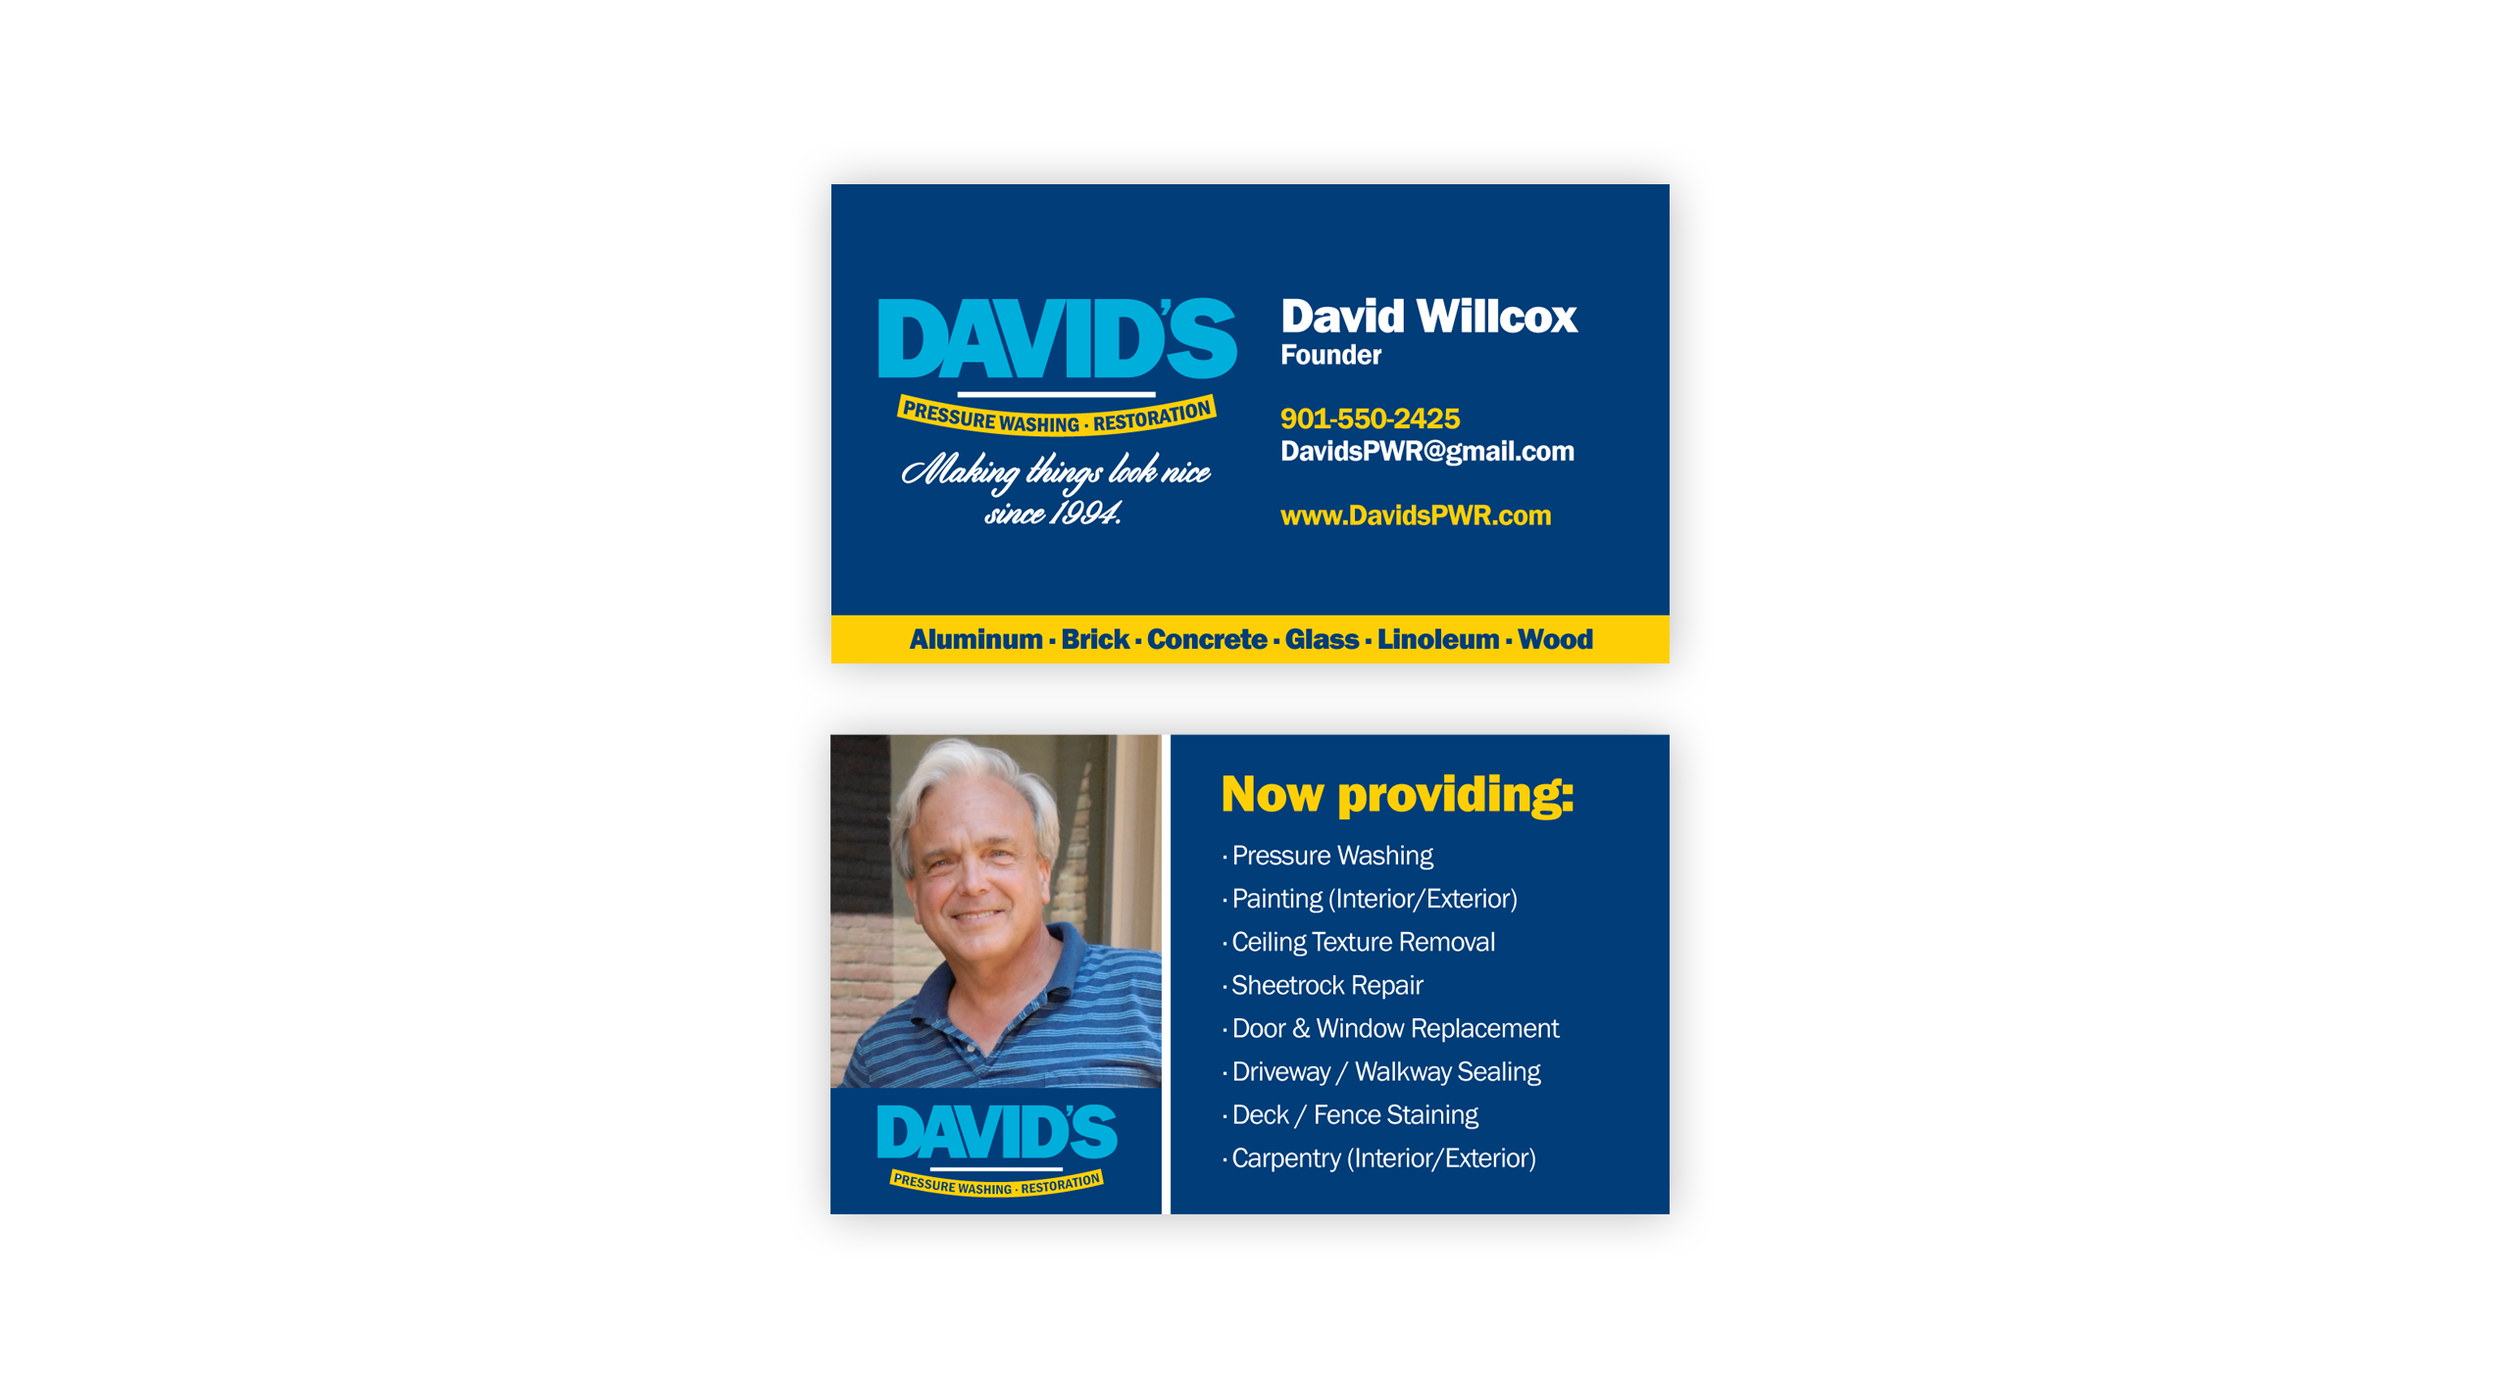 Davids-Power-Washing-and-Restoration_Business-Cards_Print-Design_Dreamcapture_Memphis-TN